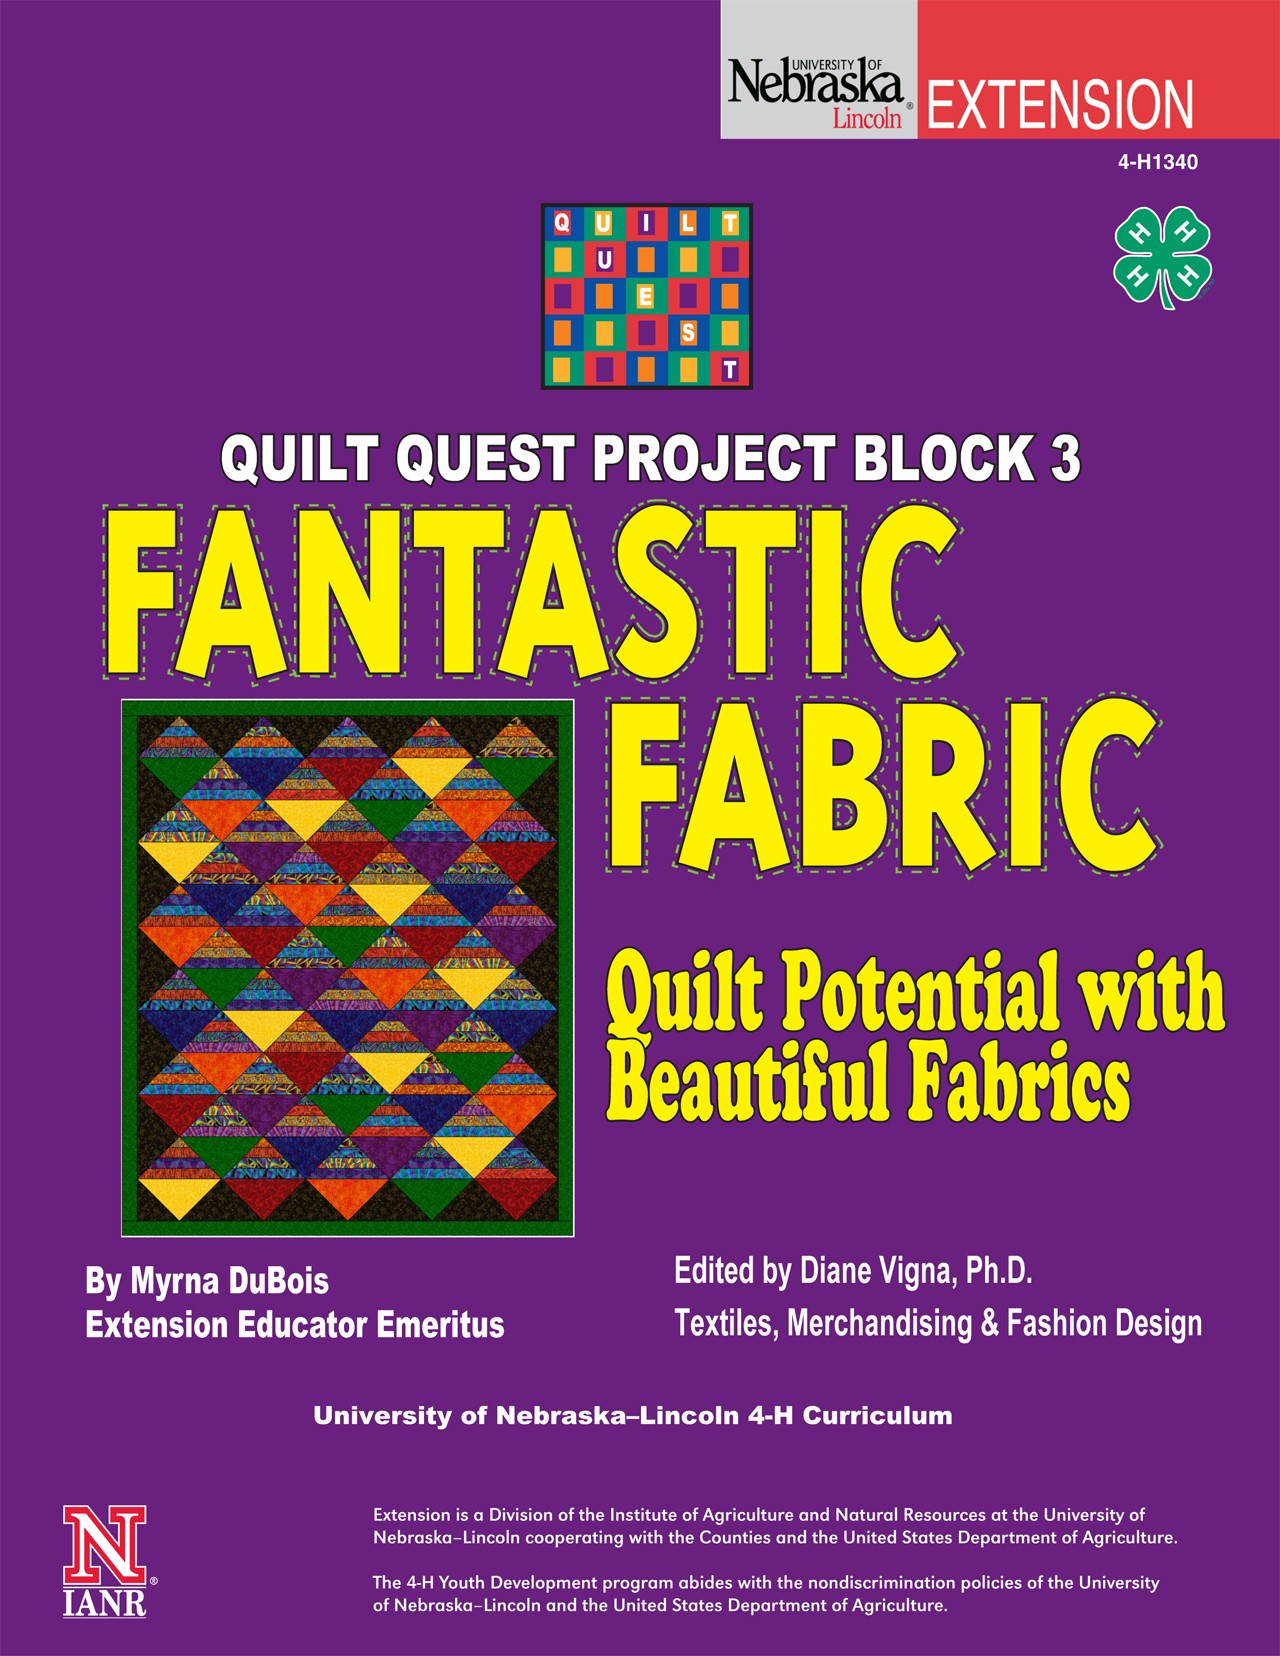 Quilt Quest Project Block 3: Fantastic Fabrics